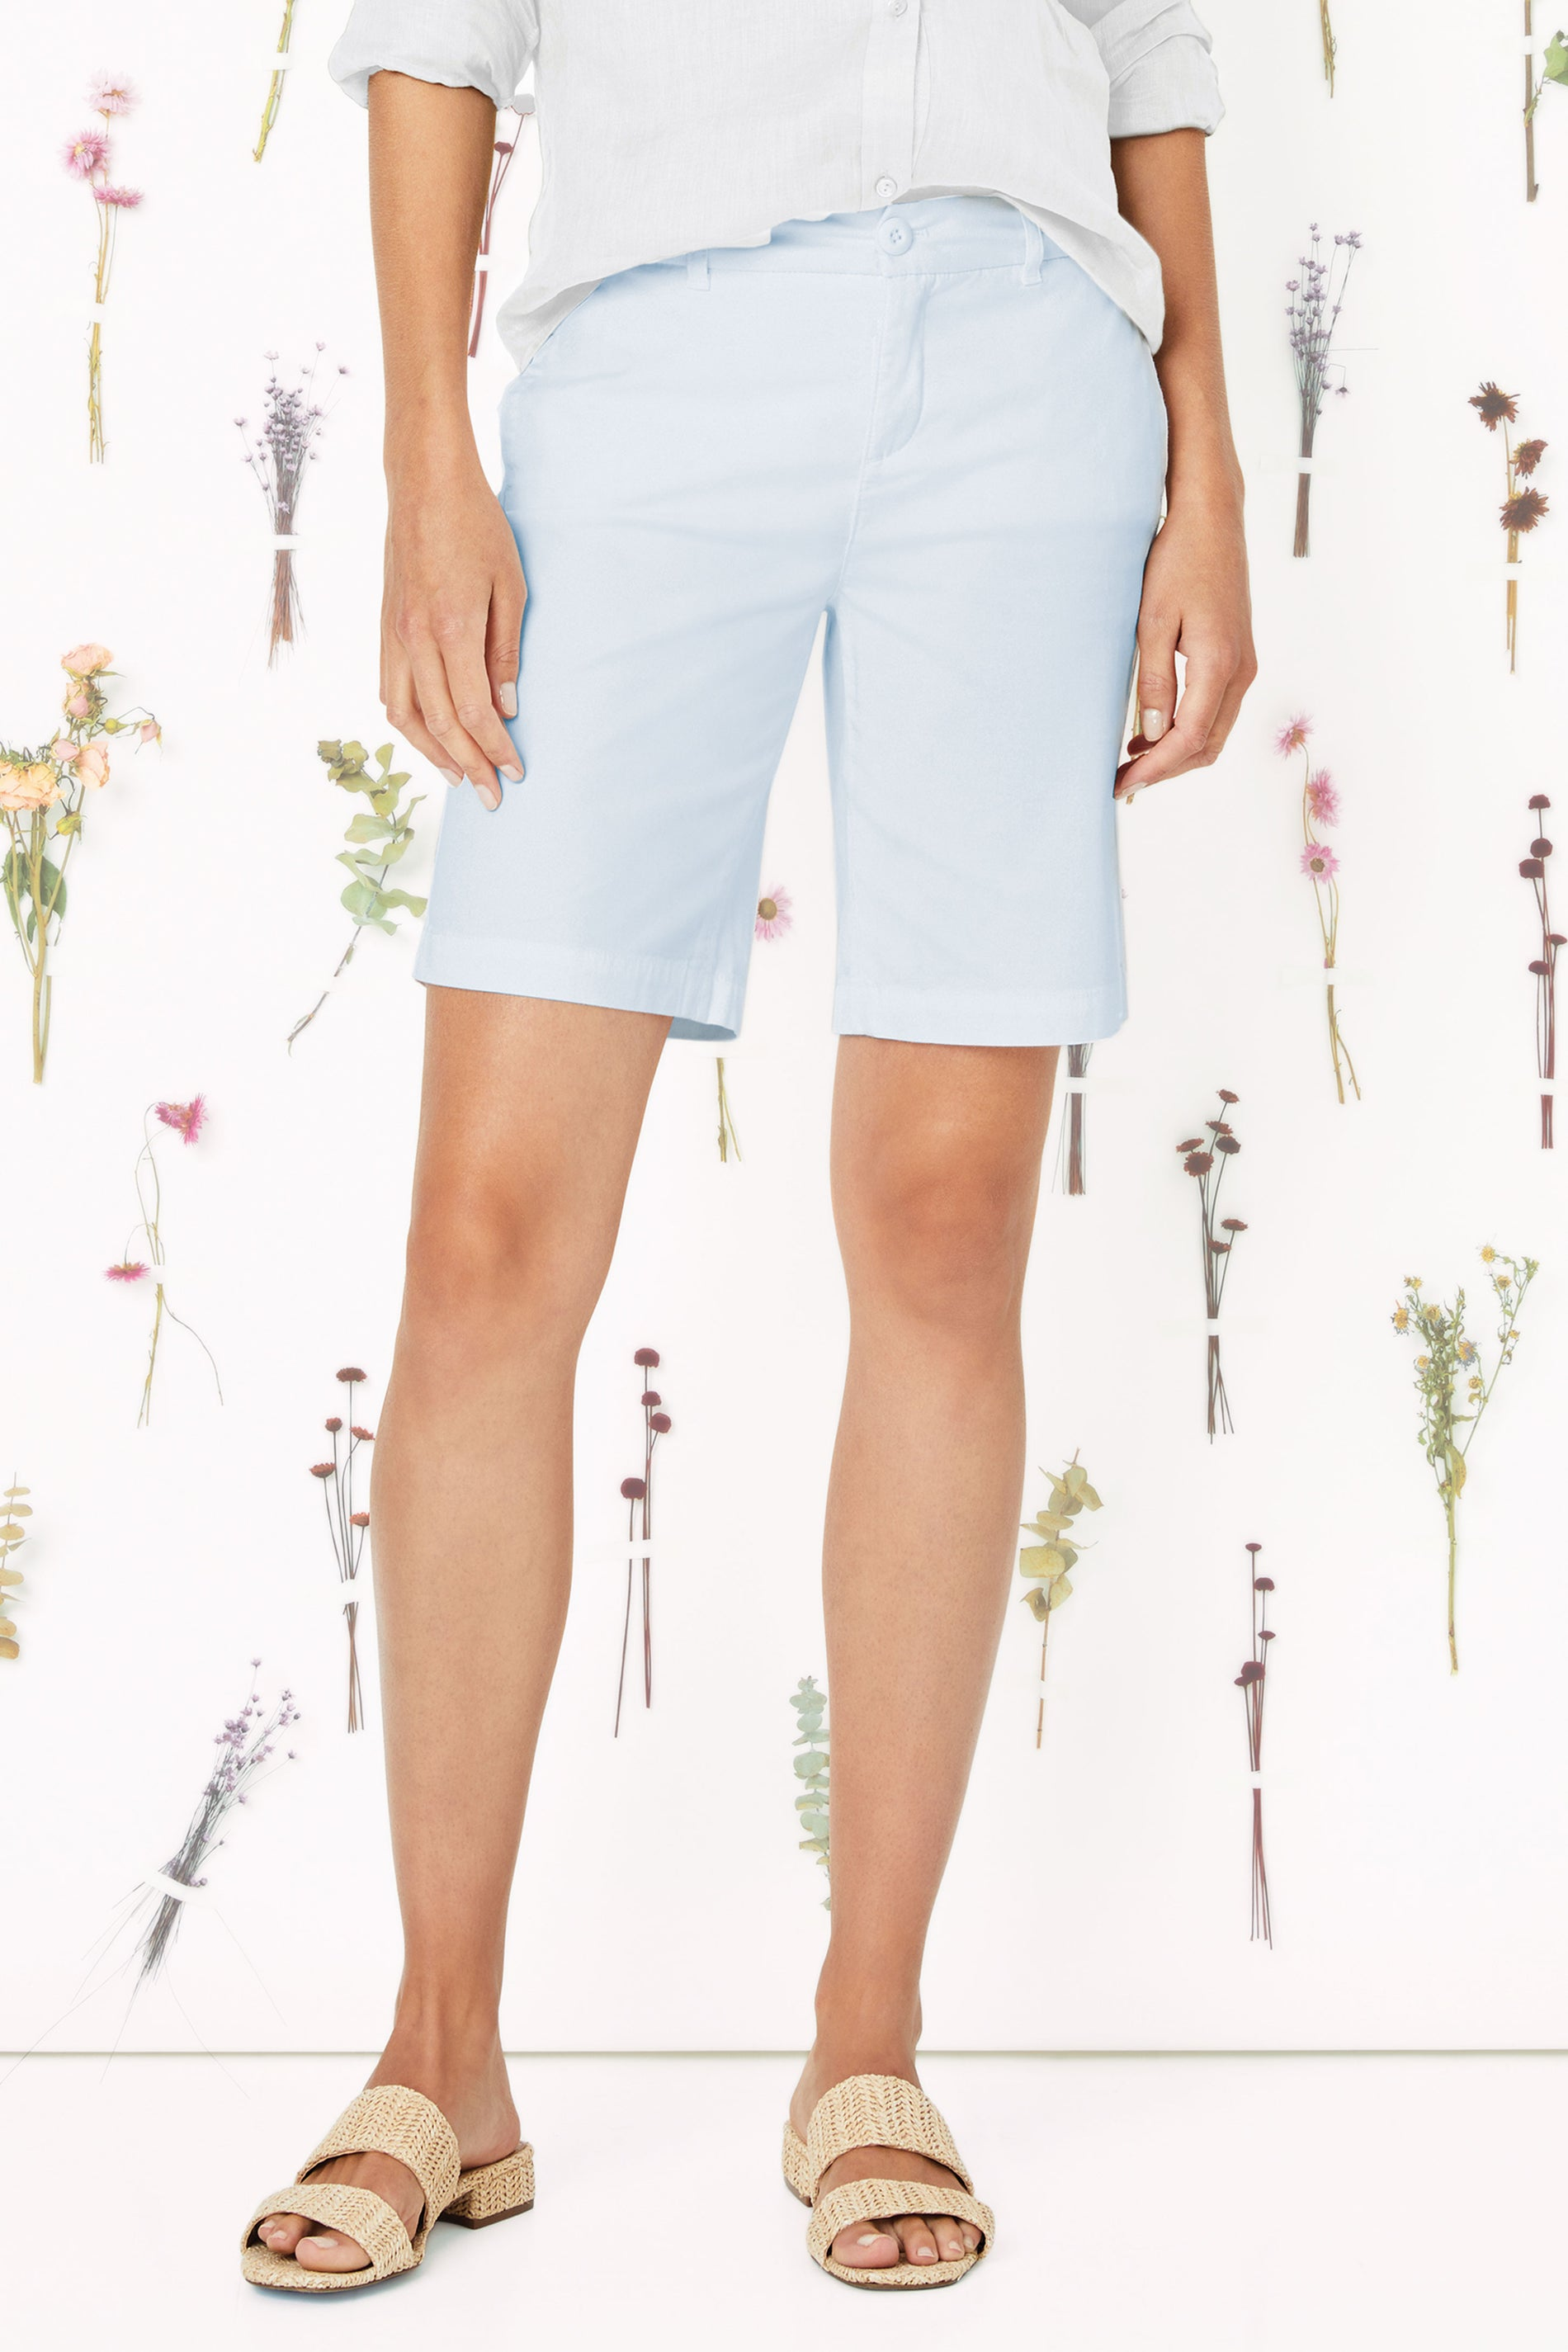 Nash Montauk Stretch Bermuda Short